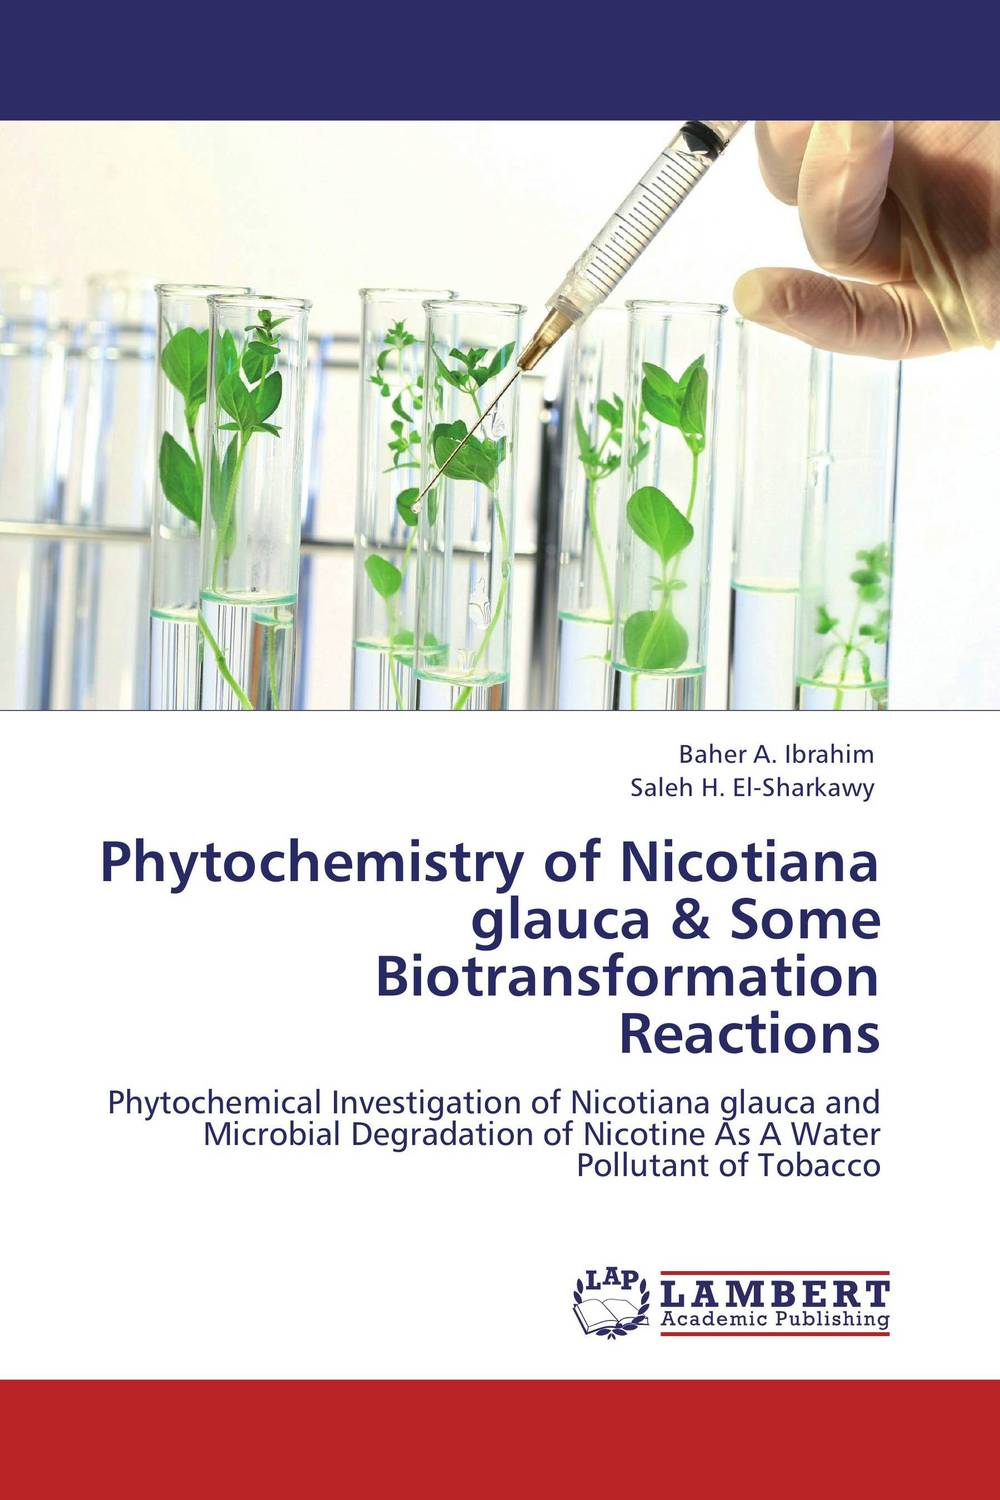 Phytochemistry of Nicotiana glauca & Some Biotransformation Reactions laxman sawant bala prabhakar and nancy pandita phytochemistry and bioactivity of enicostemma littorale